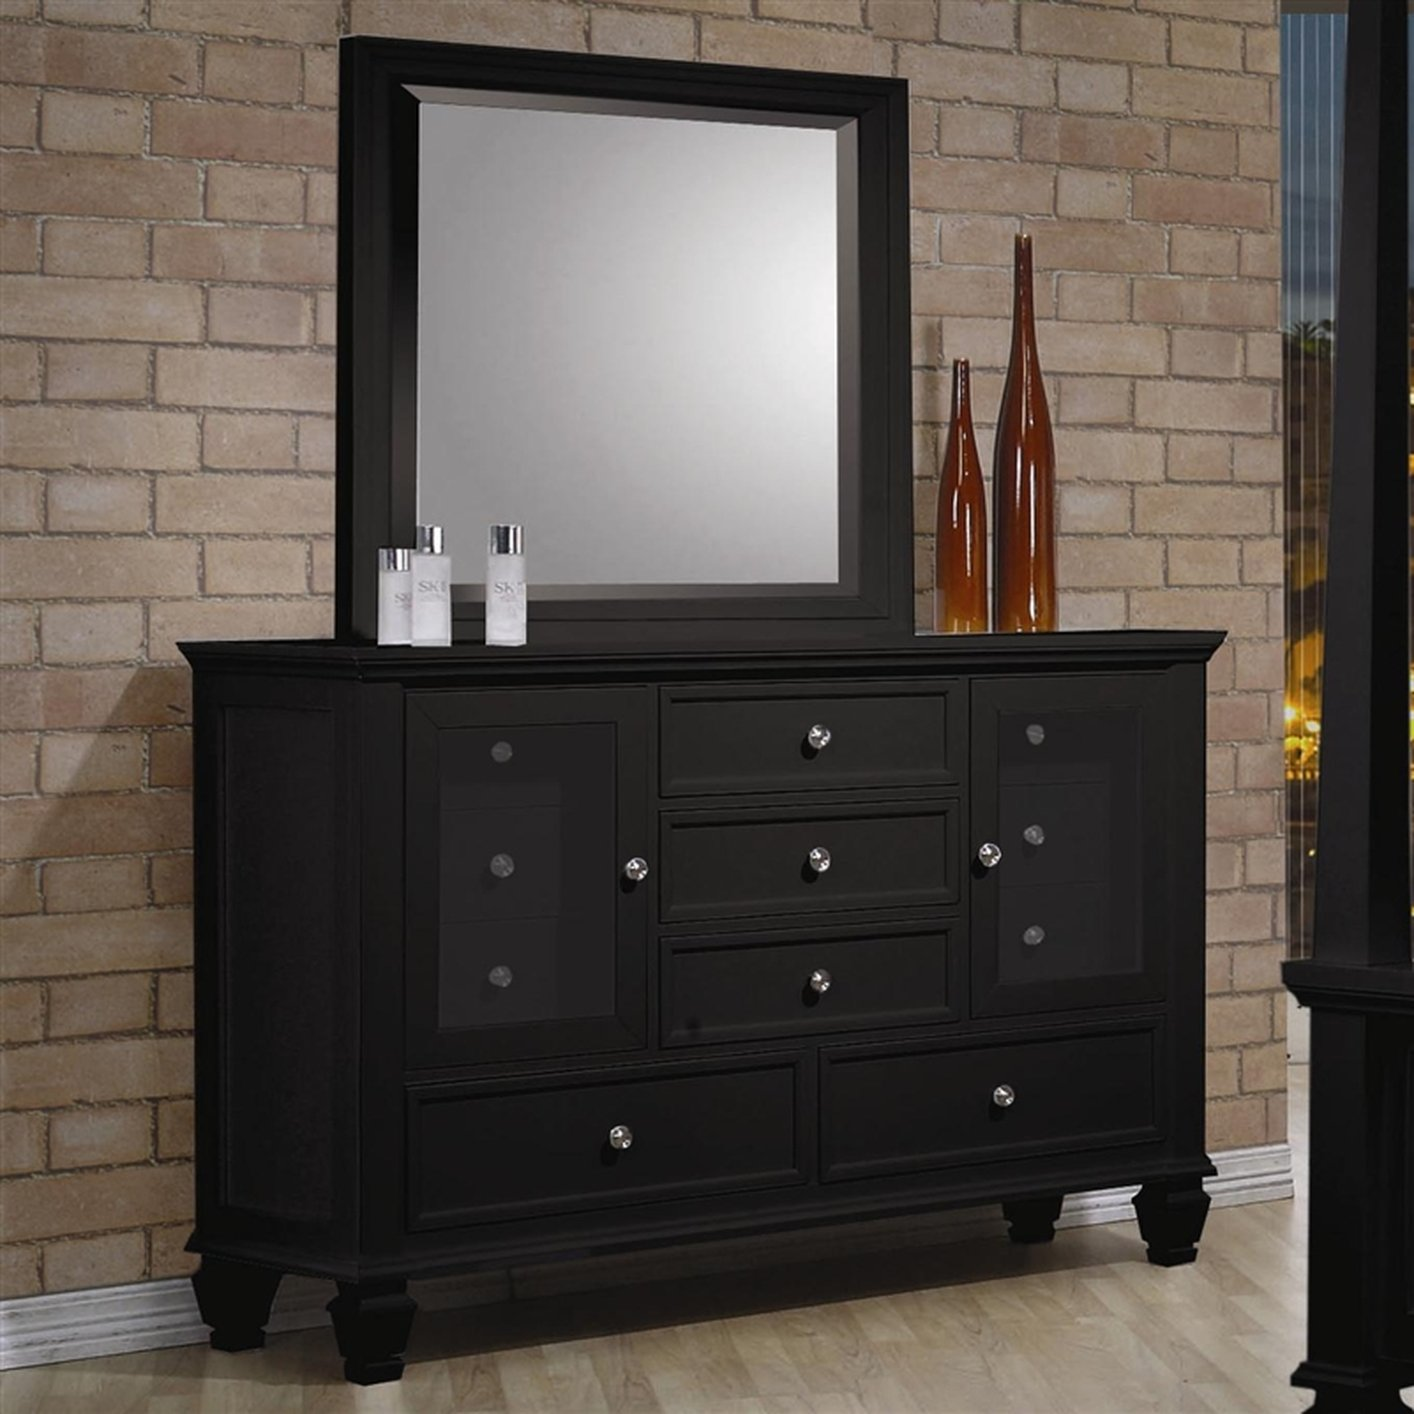 Coaster 201323 black wood dresser steal a sofa furniture for Bedroom furniture 90036